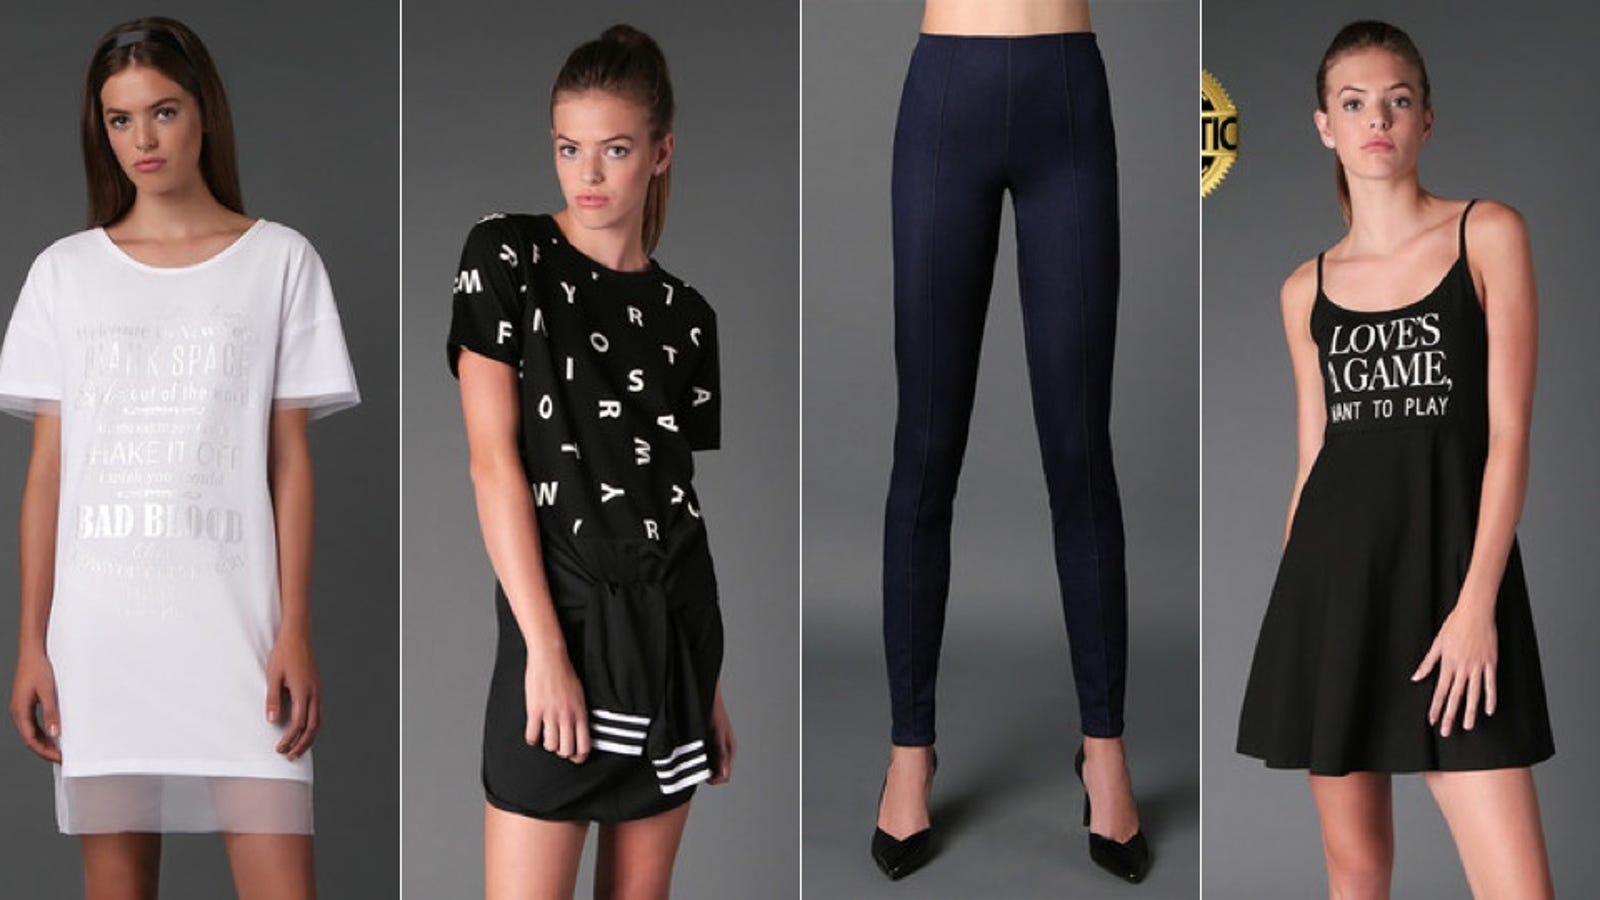 8869d2850 Here's What Taylor Swift's Bootleg-Inspired Fashion Line for China Looks  Like